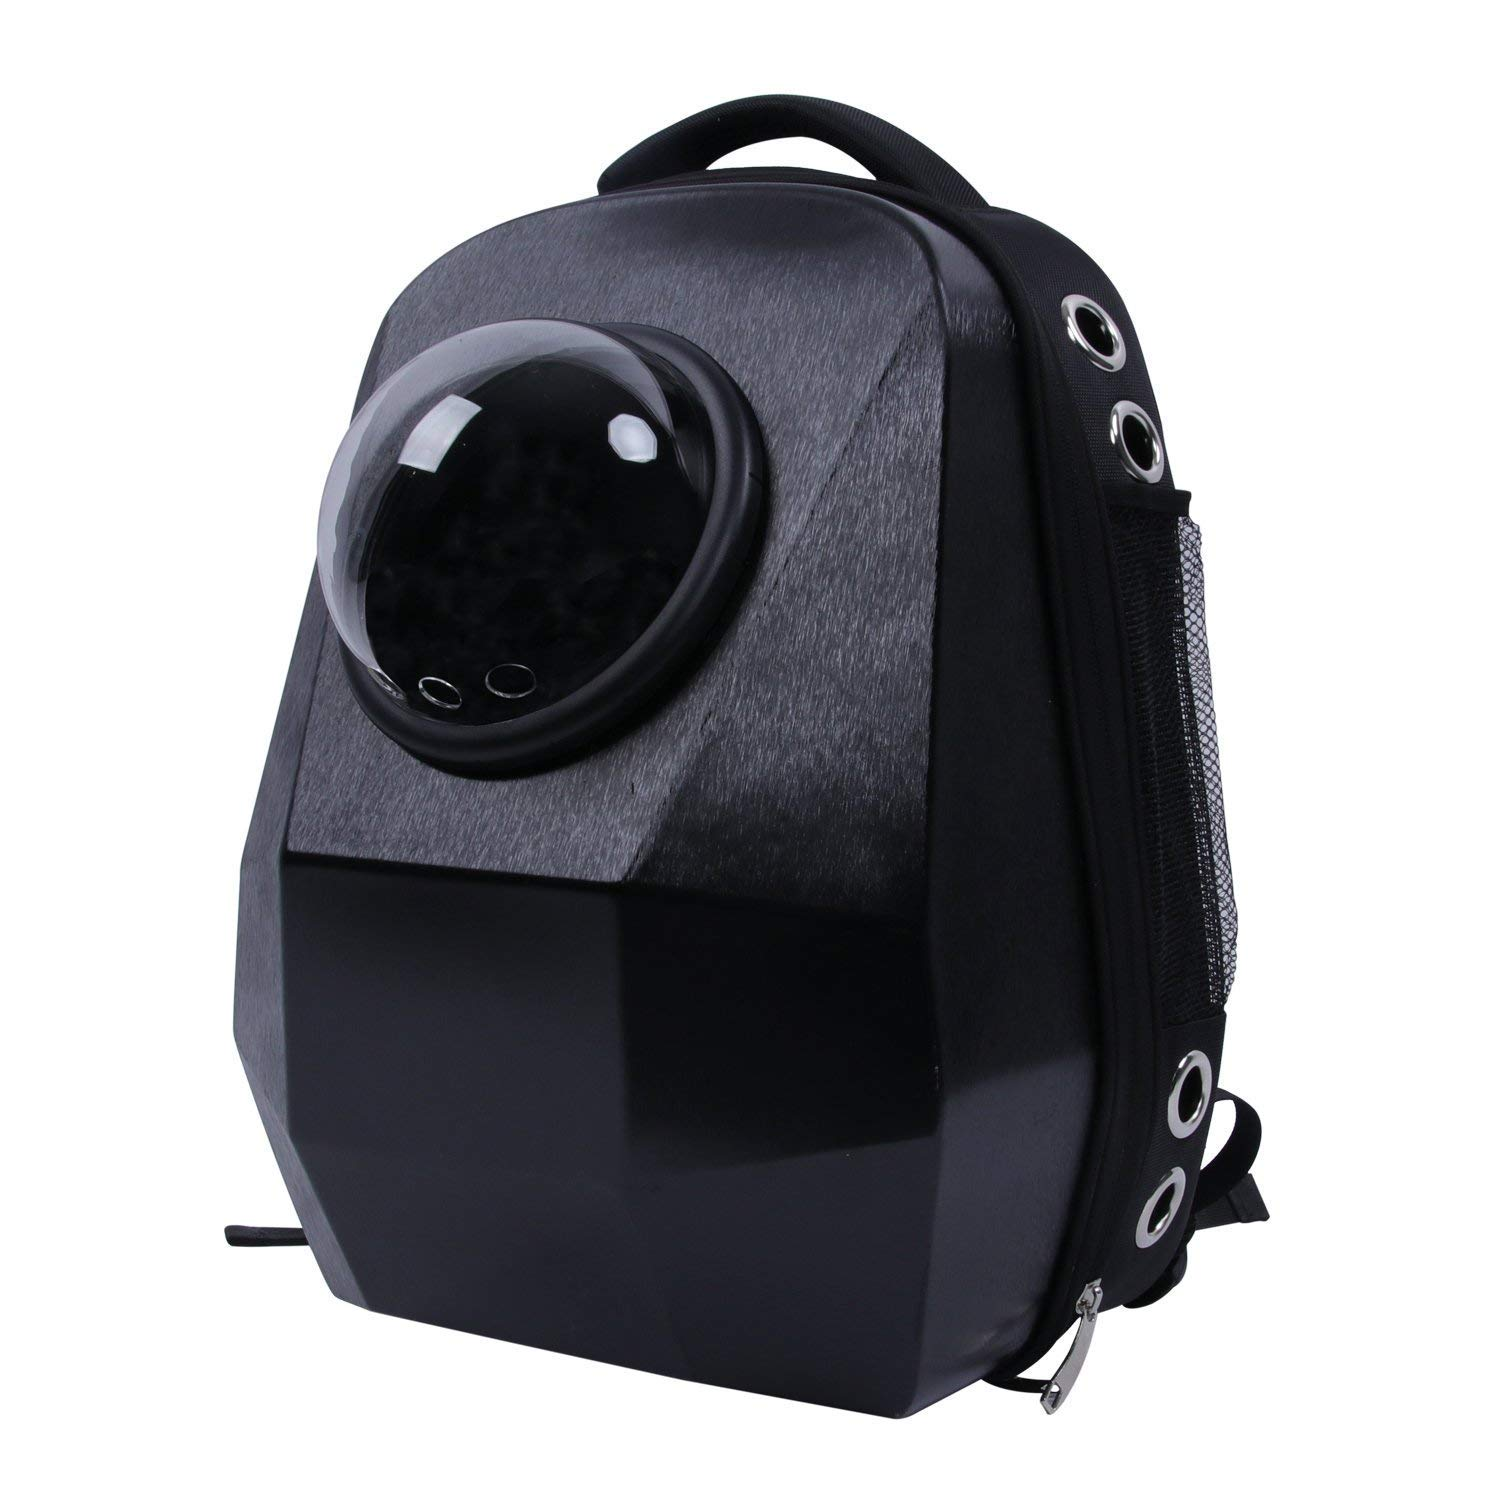 GXFLO Pet Diamond Space Capsule Portable Backpack Porous Waterproof Pet Backpack Bubble Dome Traveler Knapsack Lightweight Bag for Cats Petite Dogs & Small Animals,Black